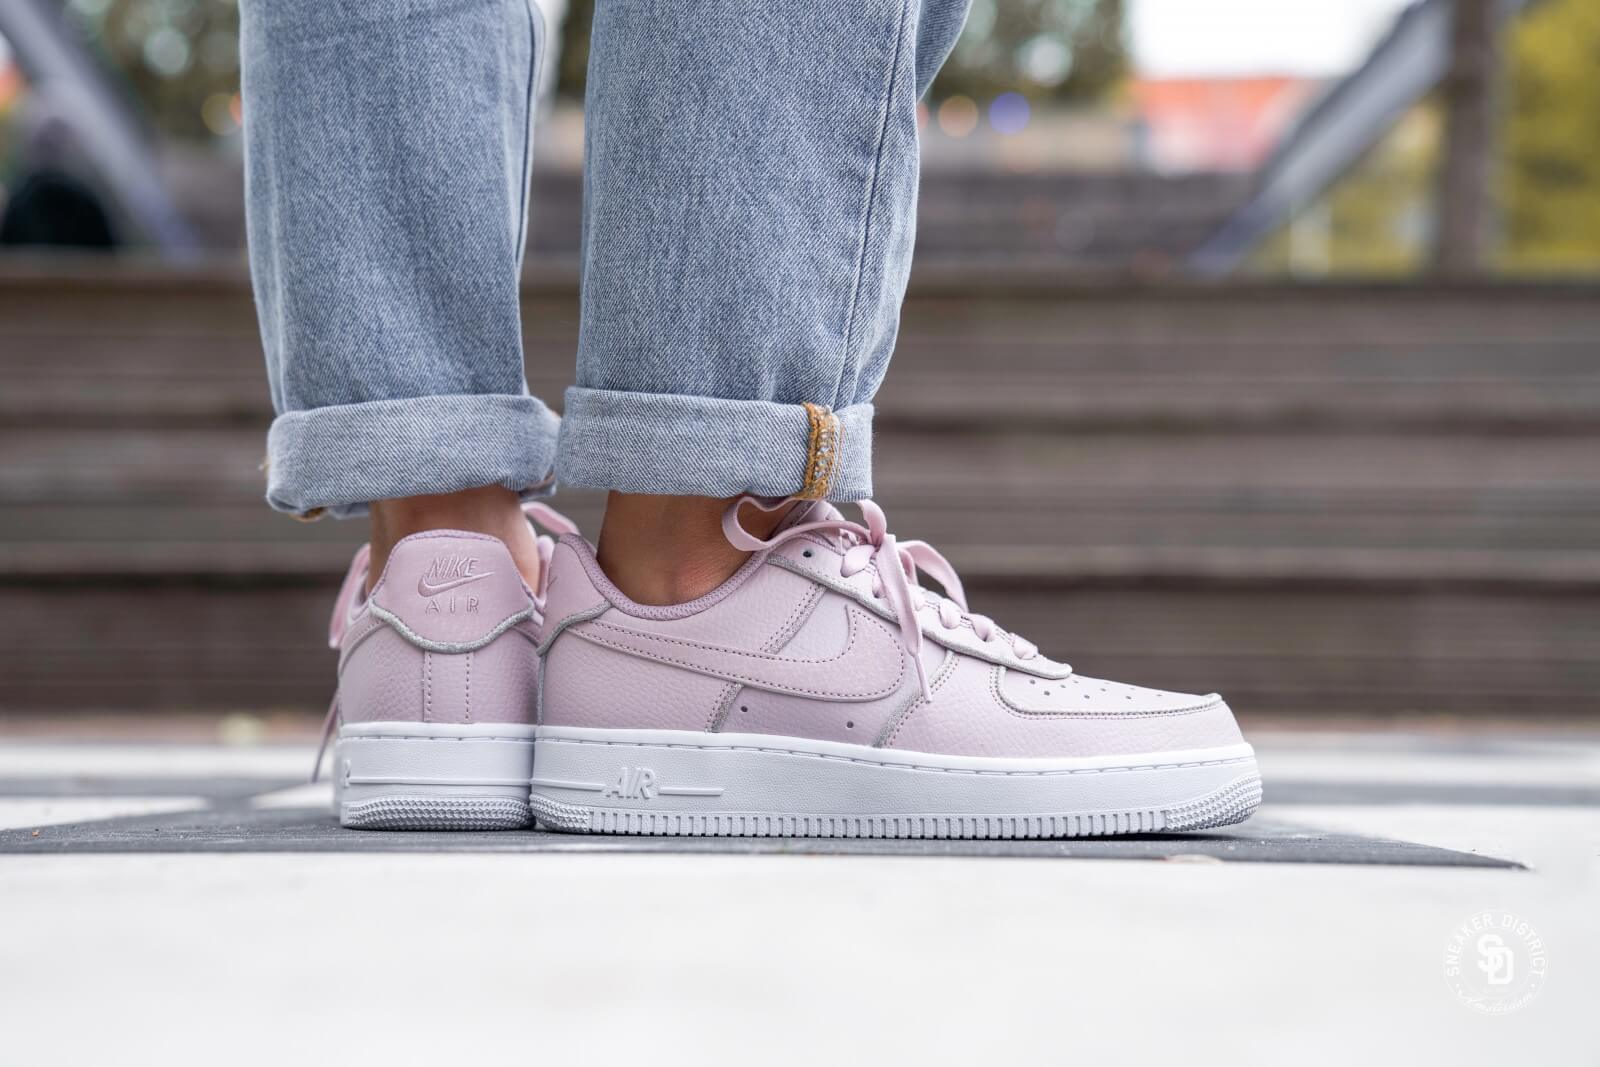 974f5fa92 nike air force 1 lo women's